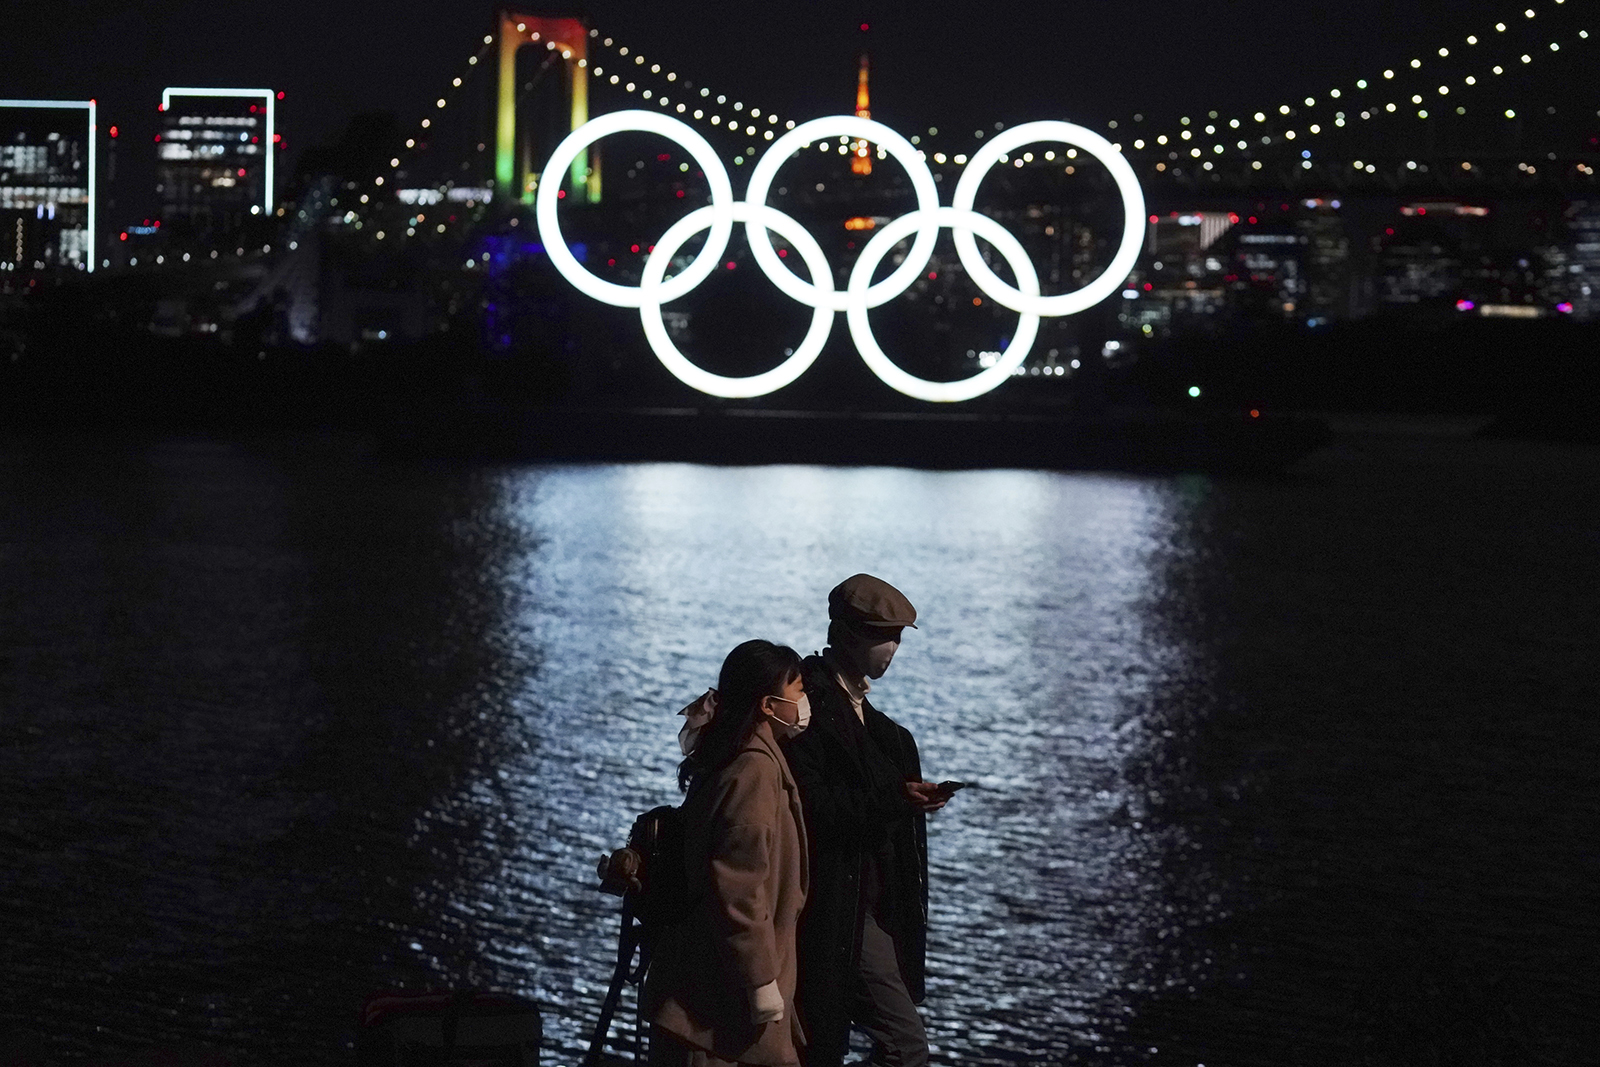 A man and a woman walk near the Olympic rings floating in the water on Dec. 1 in the Odaiba area of Tokyo.